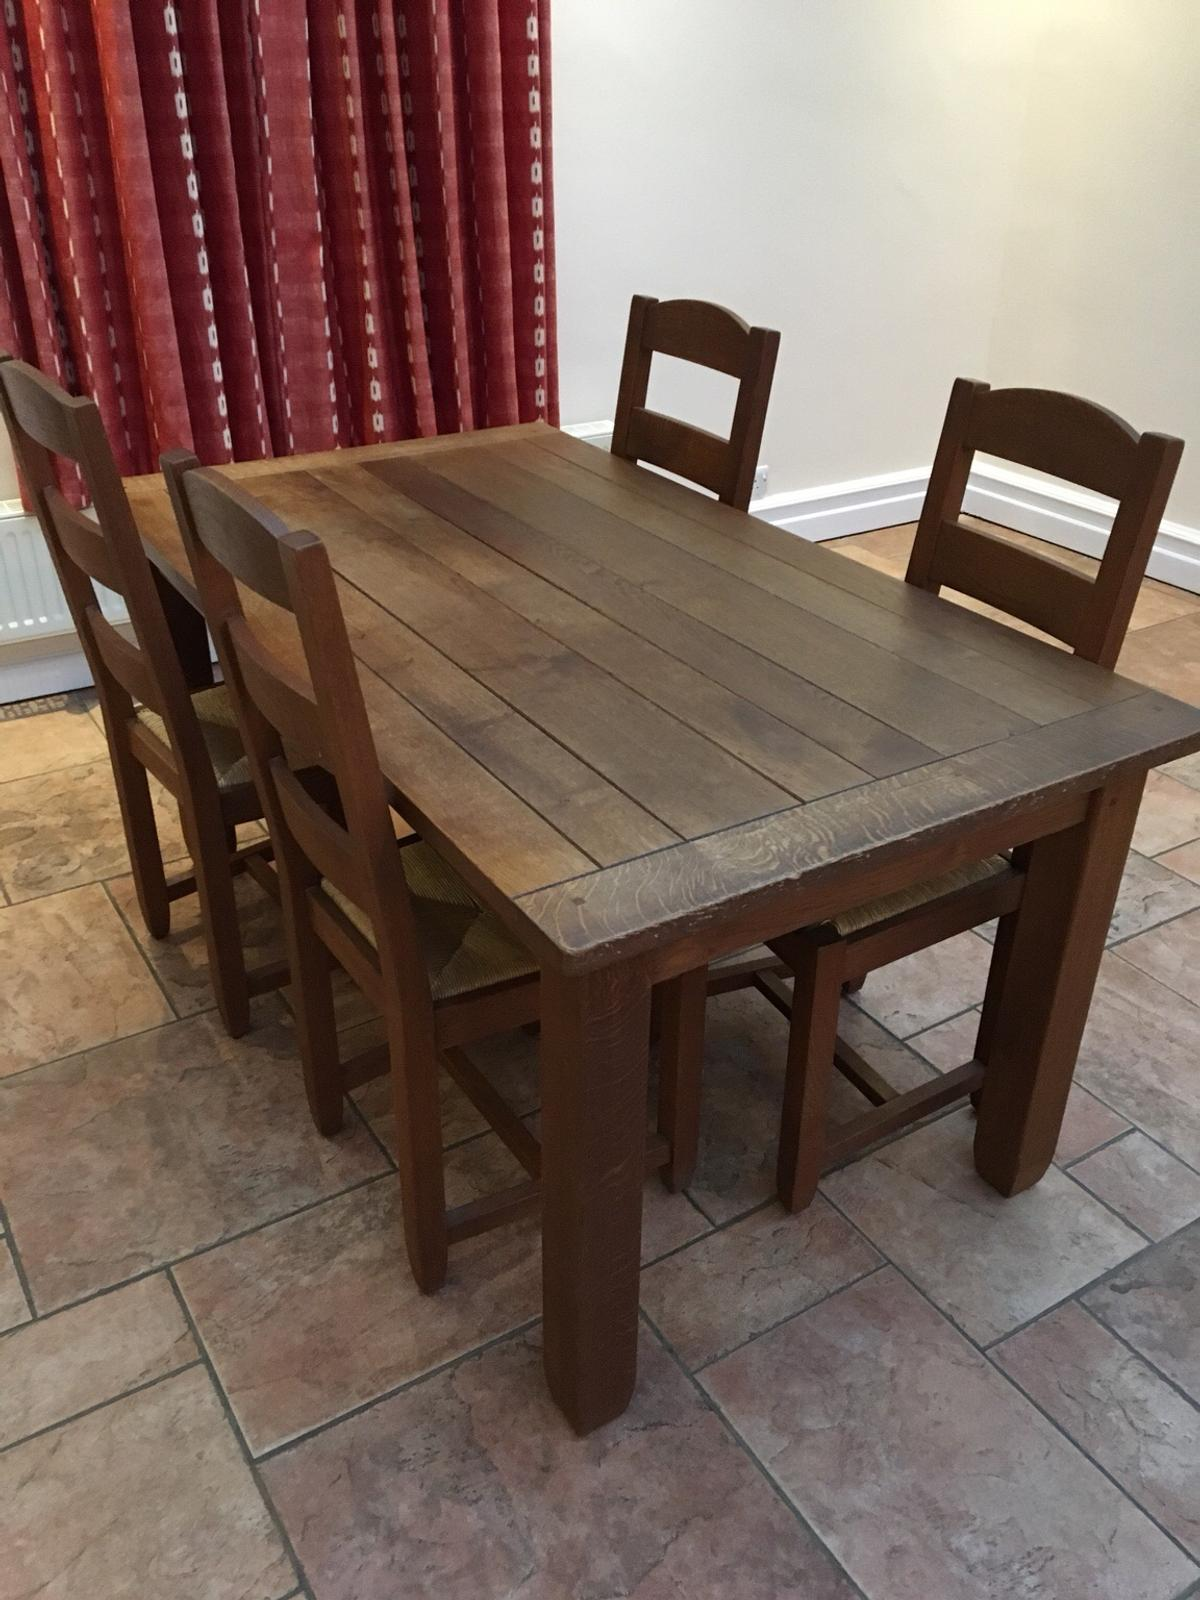 M S Hemsley Oak Table 4 Chairs In Mk17 Guise For 225 00